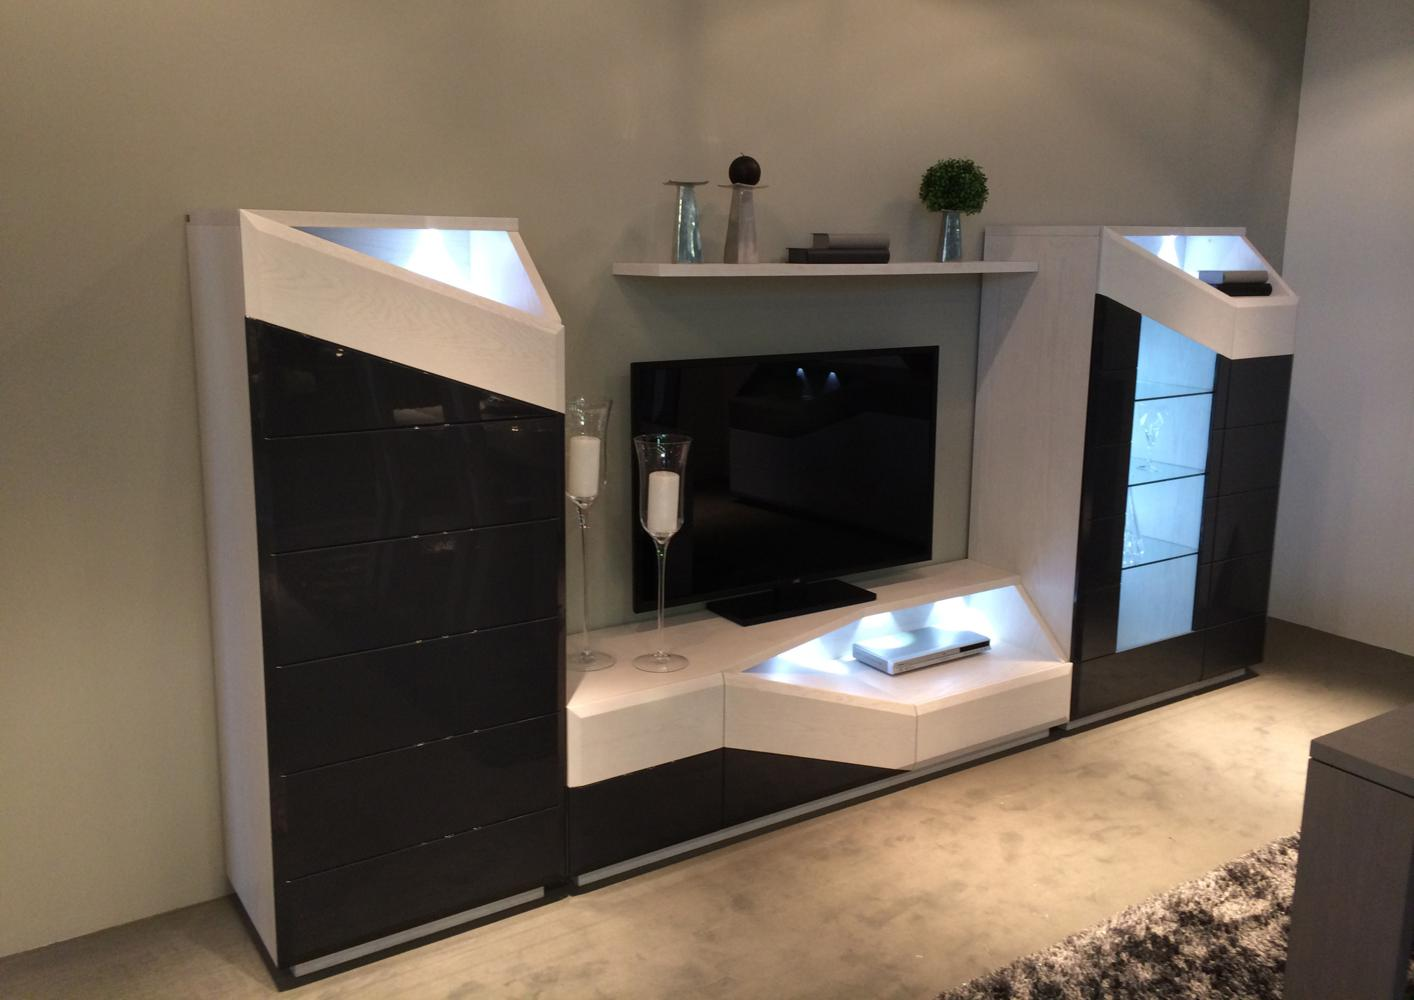 acheter votre meuble tv led laque et bois contemporain. Black Bedroom Furniture Sets. Home Design Ideas